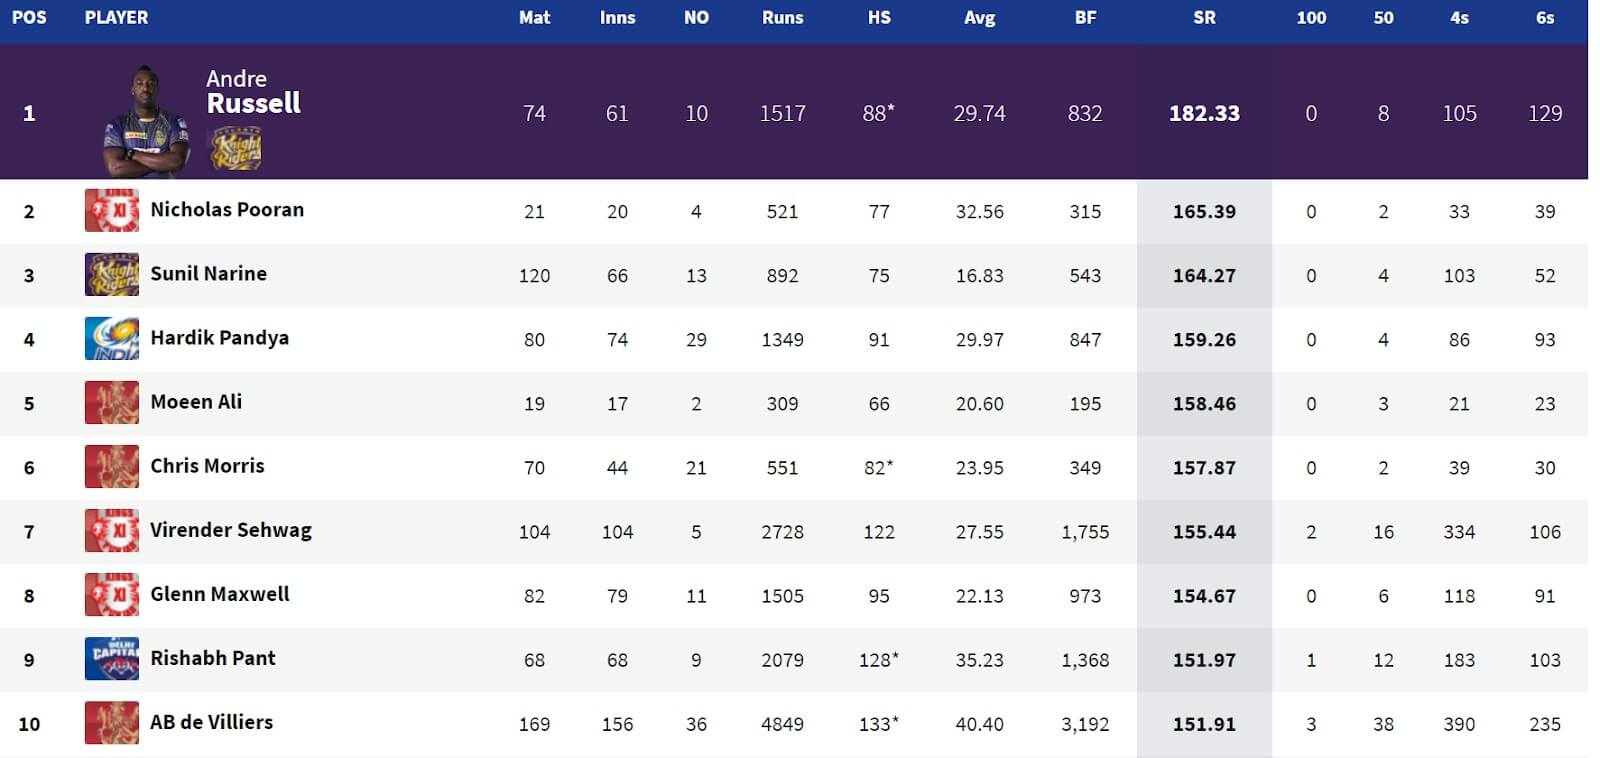 Highest Strike Rate in the History of the IPL: Top 10 Players